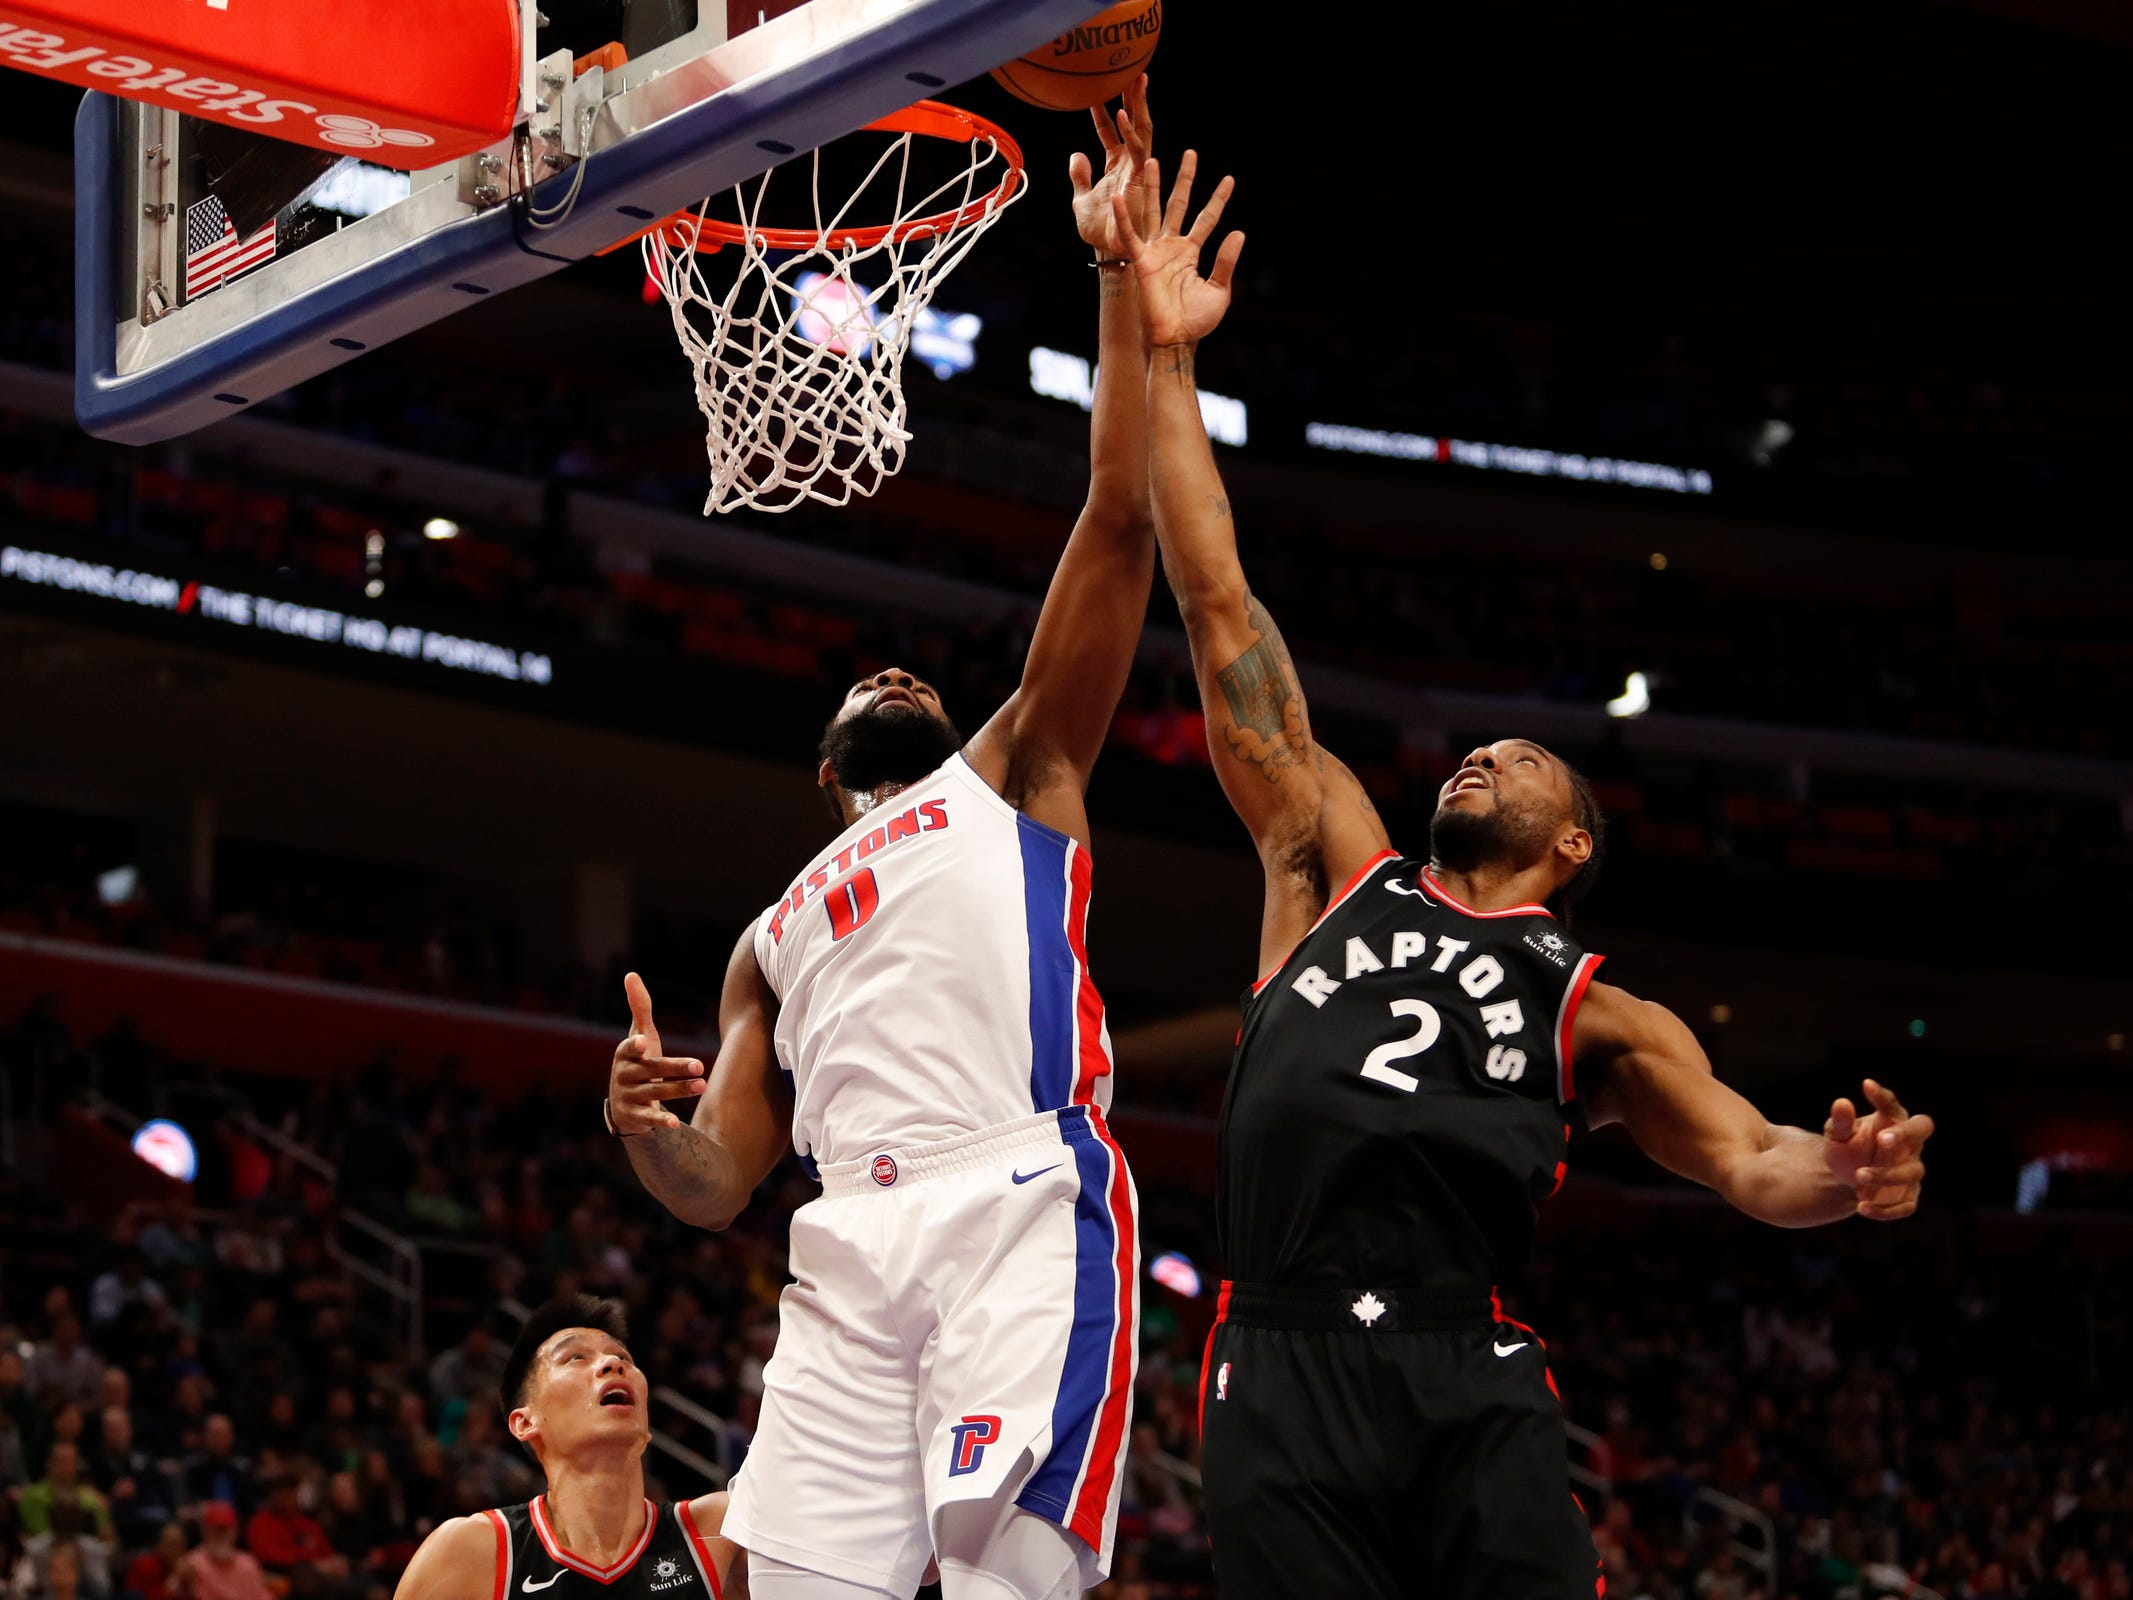 Detroit Pistons center Andre Drummond tips the ball in against Toronto Raptors forward Kawhi Leonard during the first quarter at Little Caesars Arena, March 17, 2019, in Detroit.